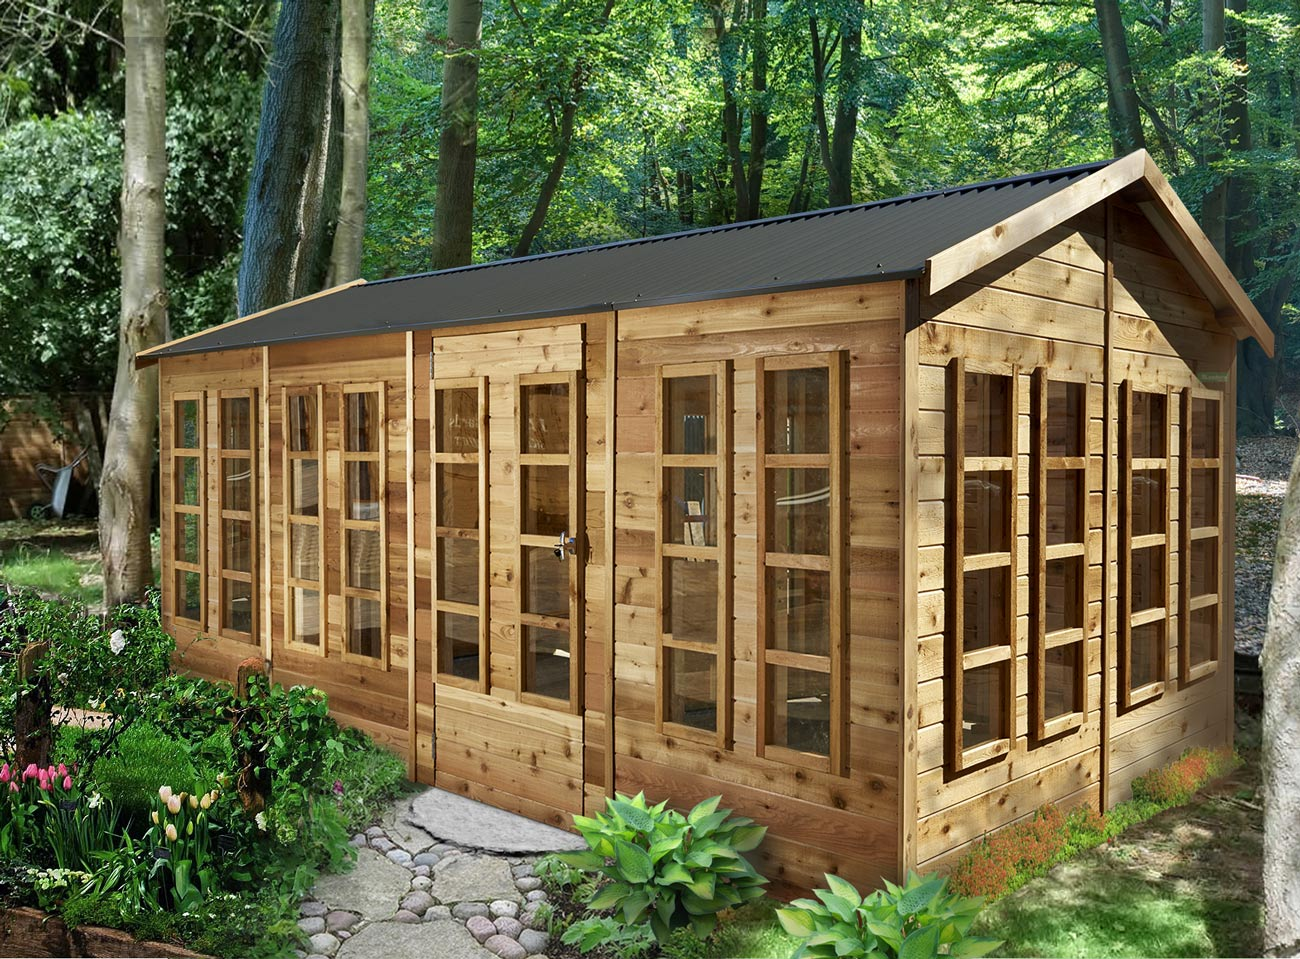 Cedar shed somerton 4 8mx2 5m 5 landera for Garden shed large